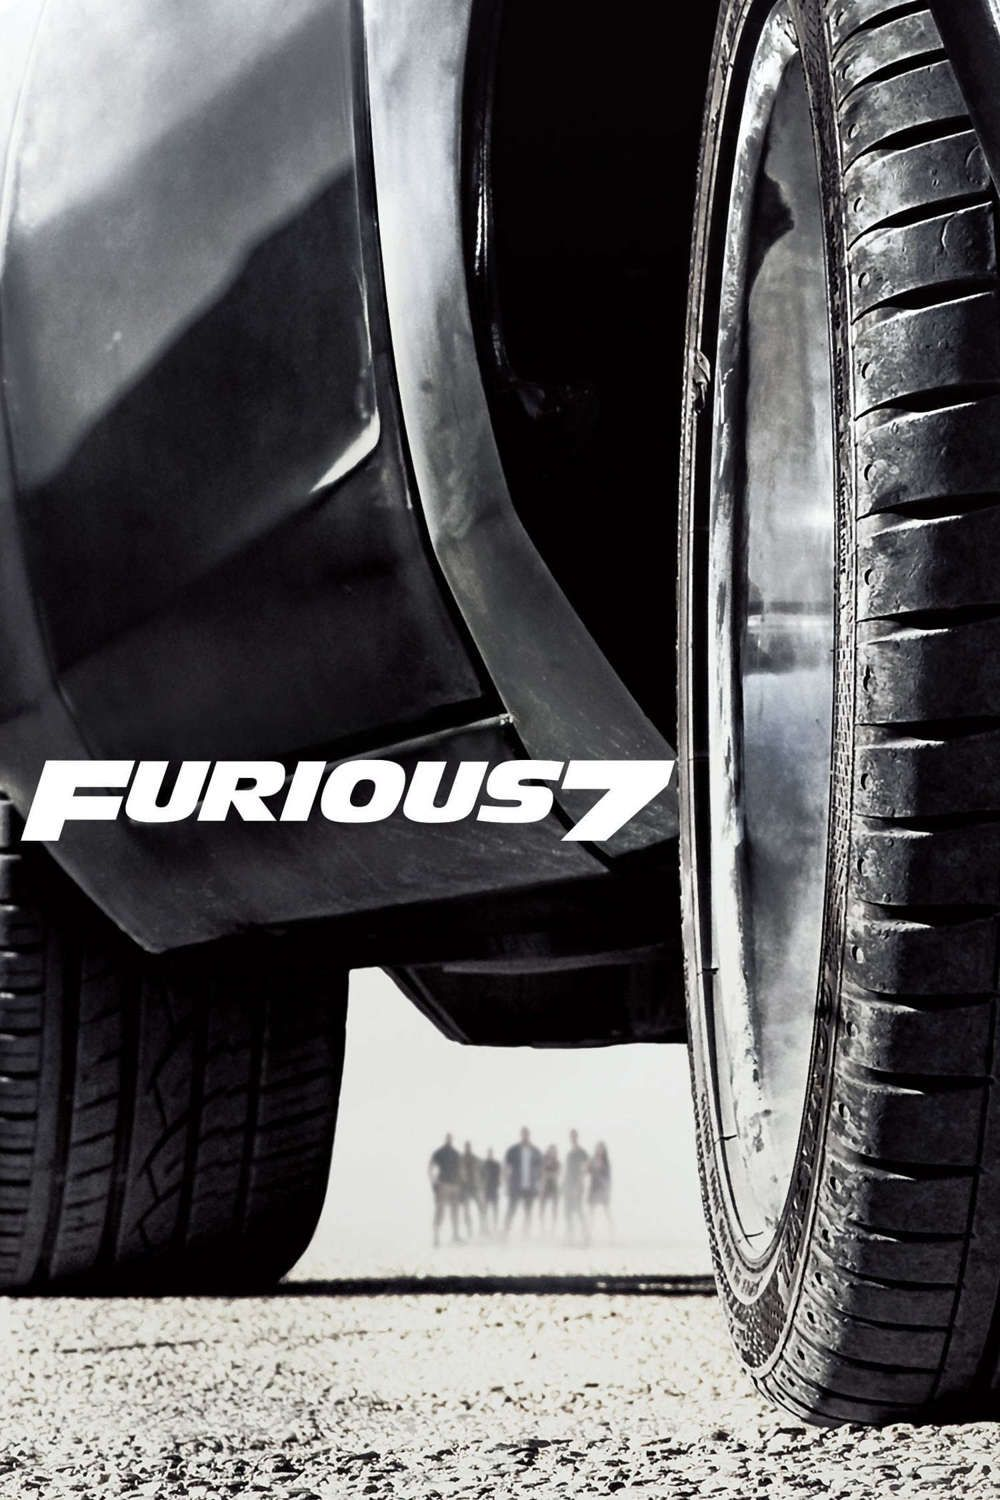 Furious 7 Full Movies Furious 7 Movie Download Movies